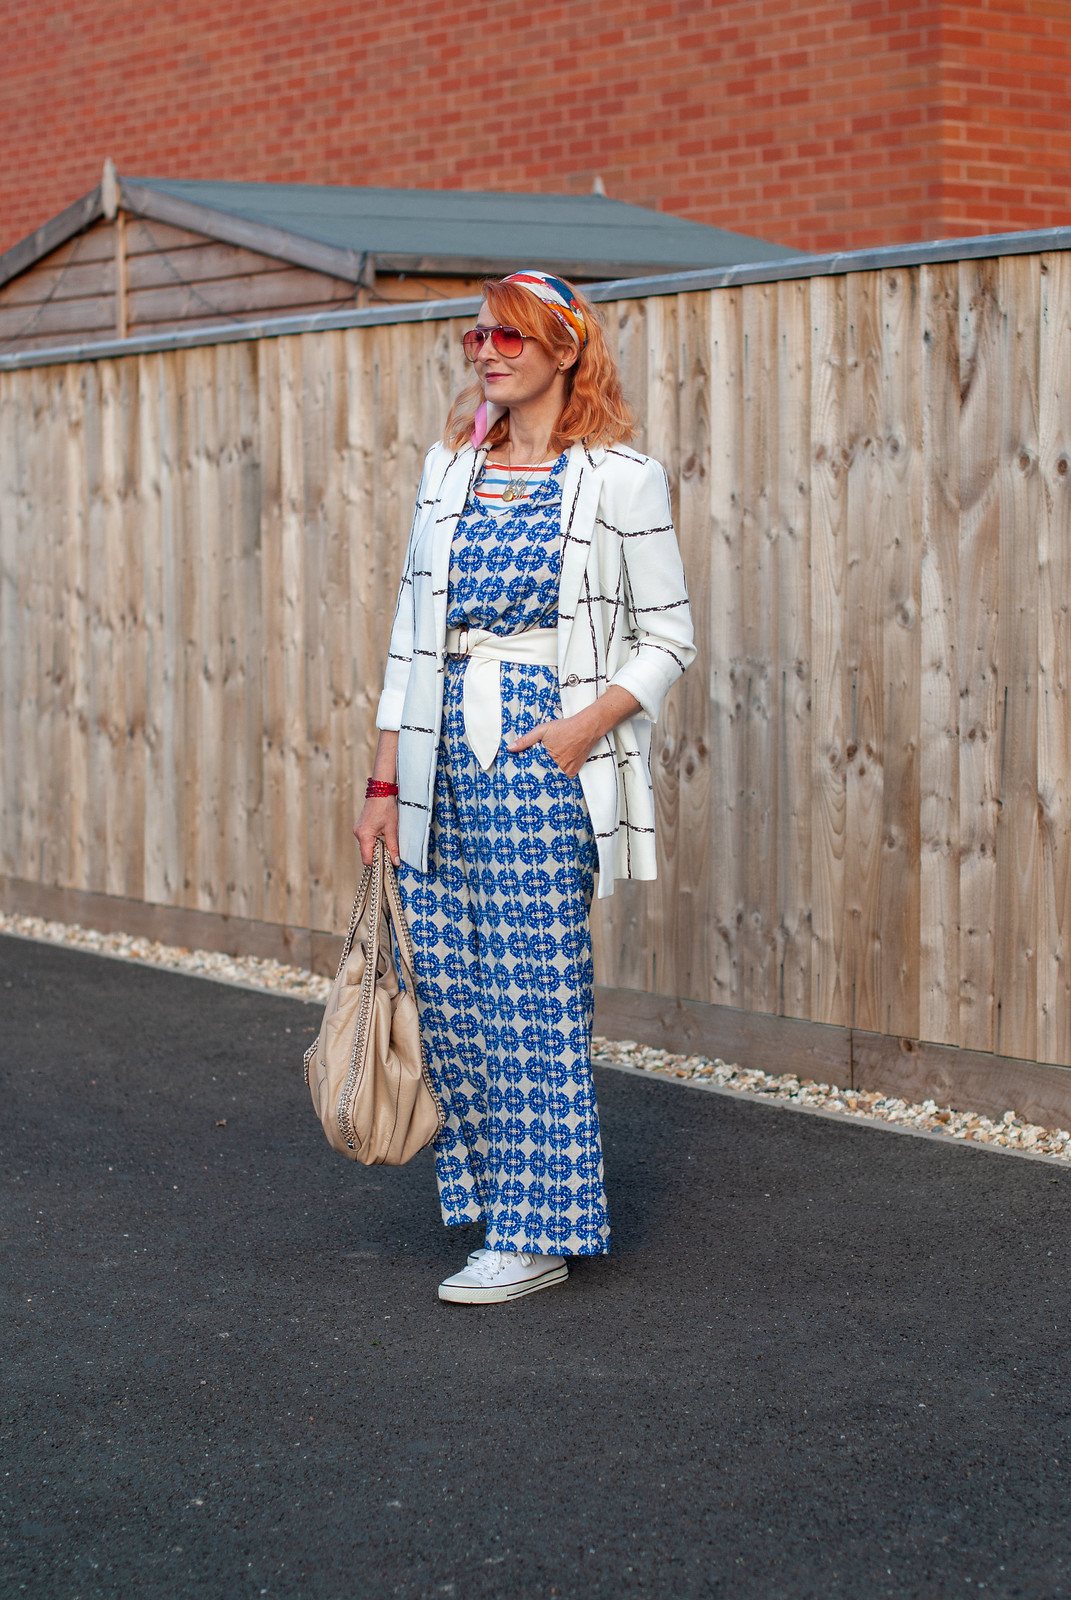 Styling a Summer Jumpsuit in Autumn With Serious Pattern Mixing: Blue patterned jumpsuit, black and white windowpane check jacket, white tennis shoes | Not Dressed As Lamb, over 40 fashion blogger